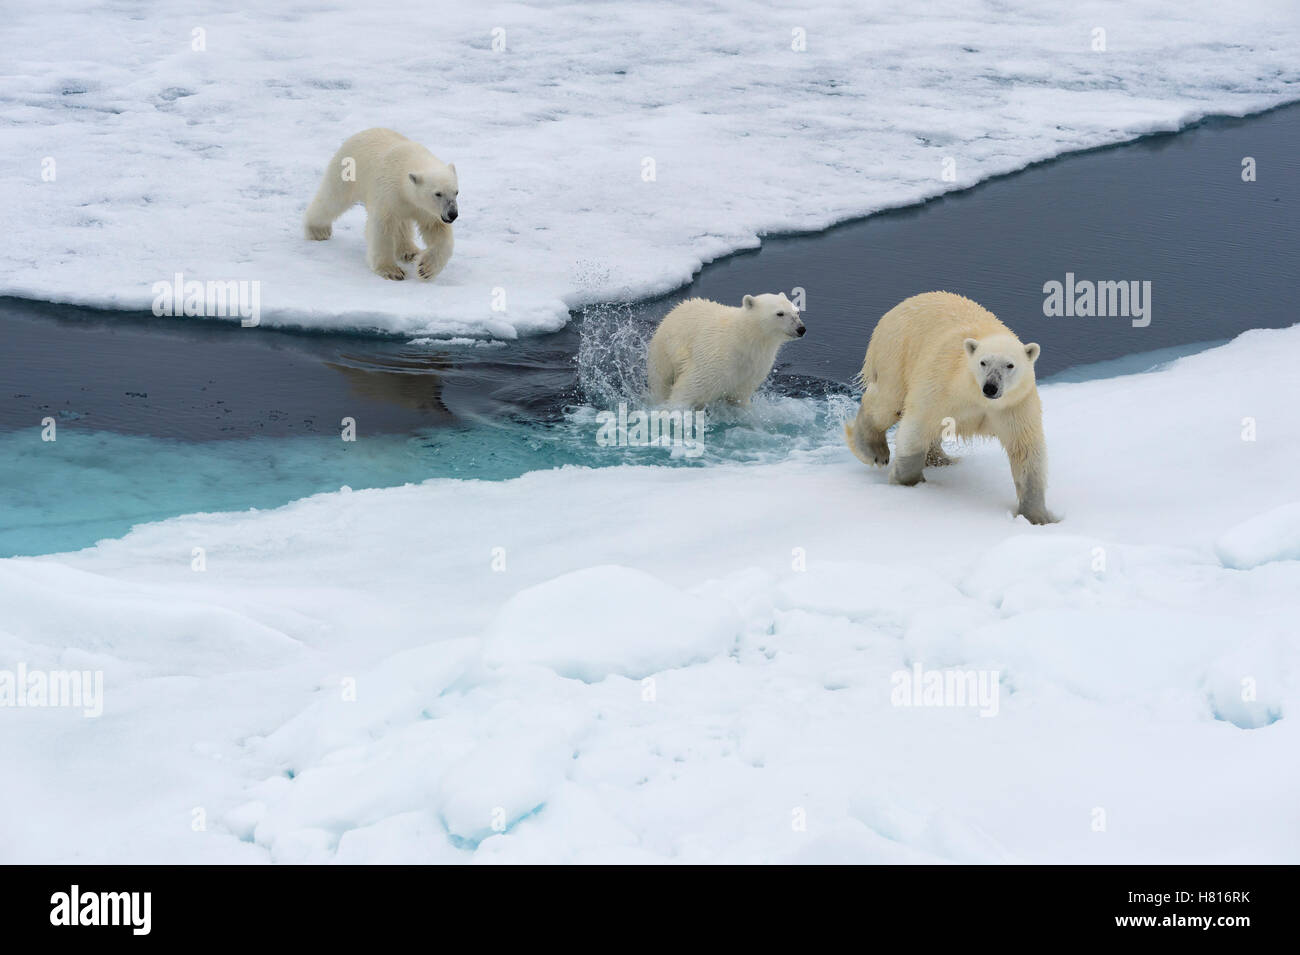 Mother polar bear (Ursus maritimus) with two cubs swimming and jumping over an open ice floe, Svalbard archipelago - Stock Image